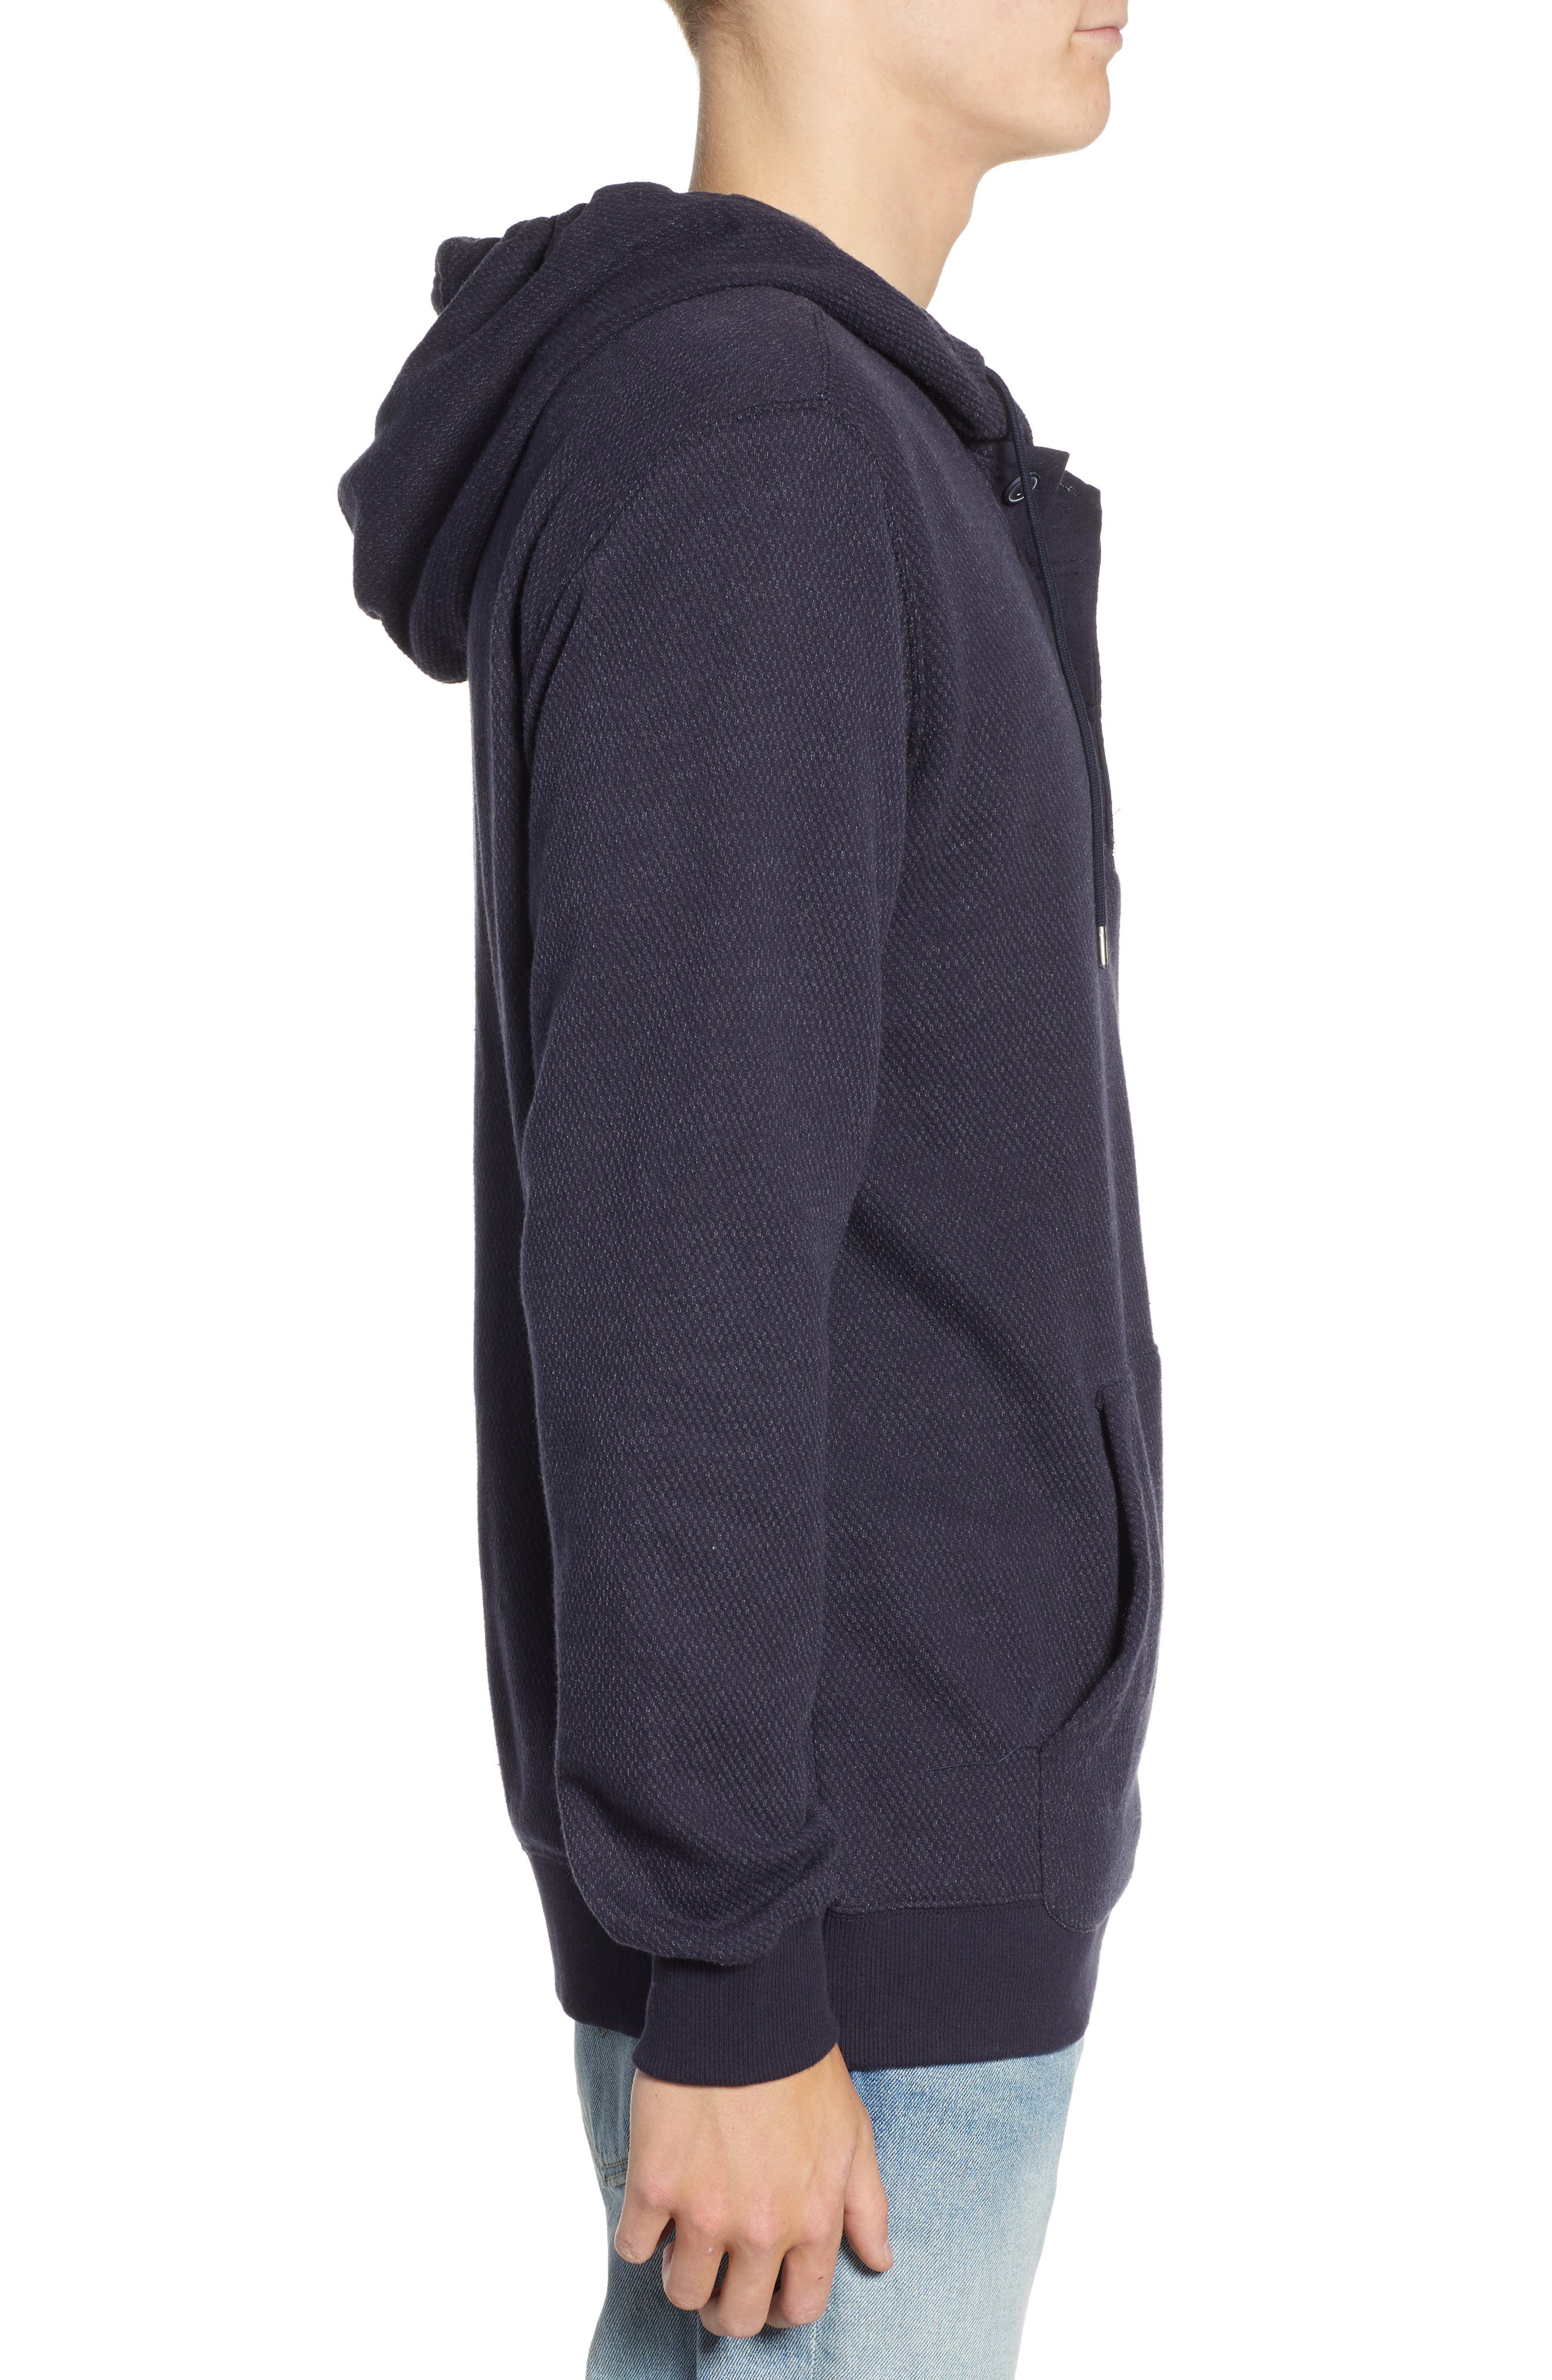 Lupo Pullover Hoodie,                             Alternate thumbnail 3, color,                             NEW NAVY